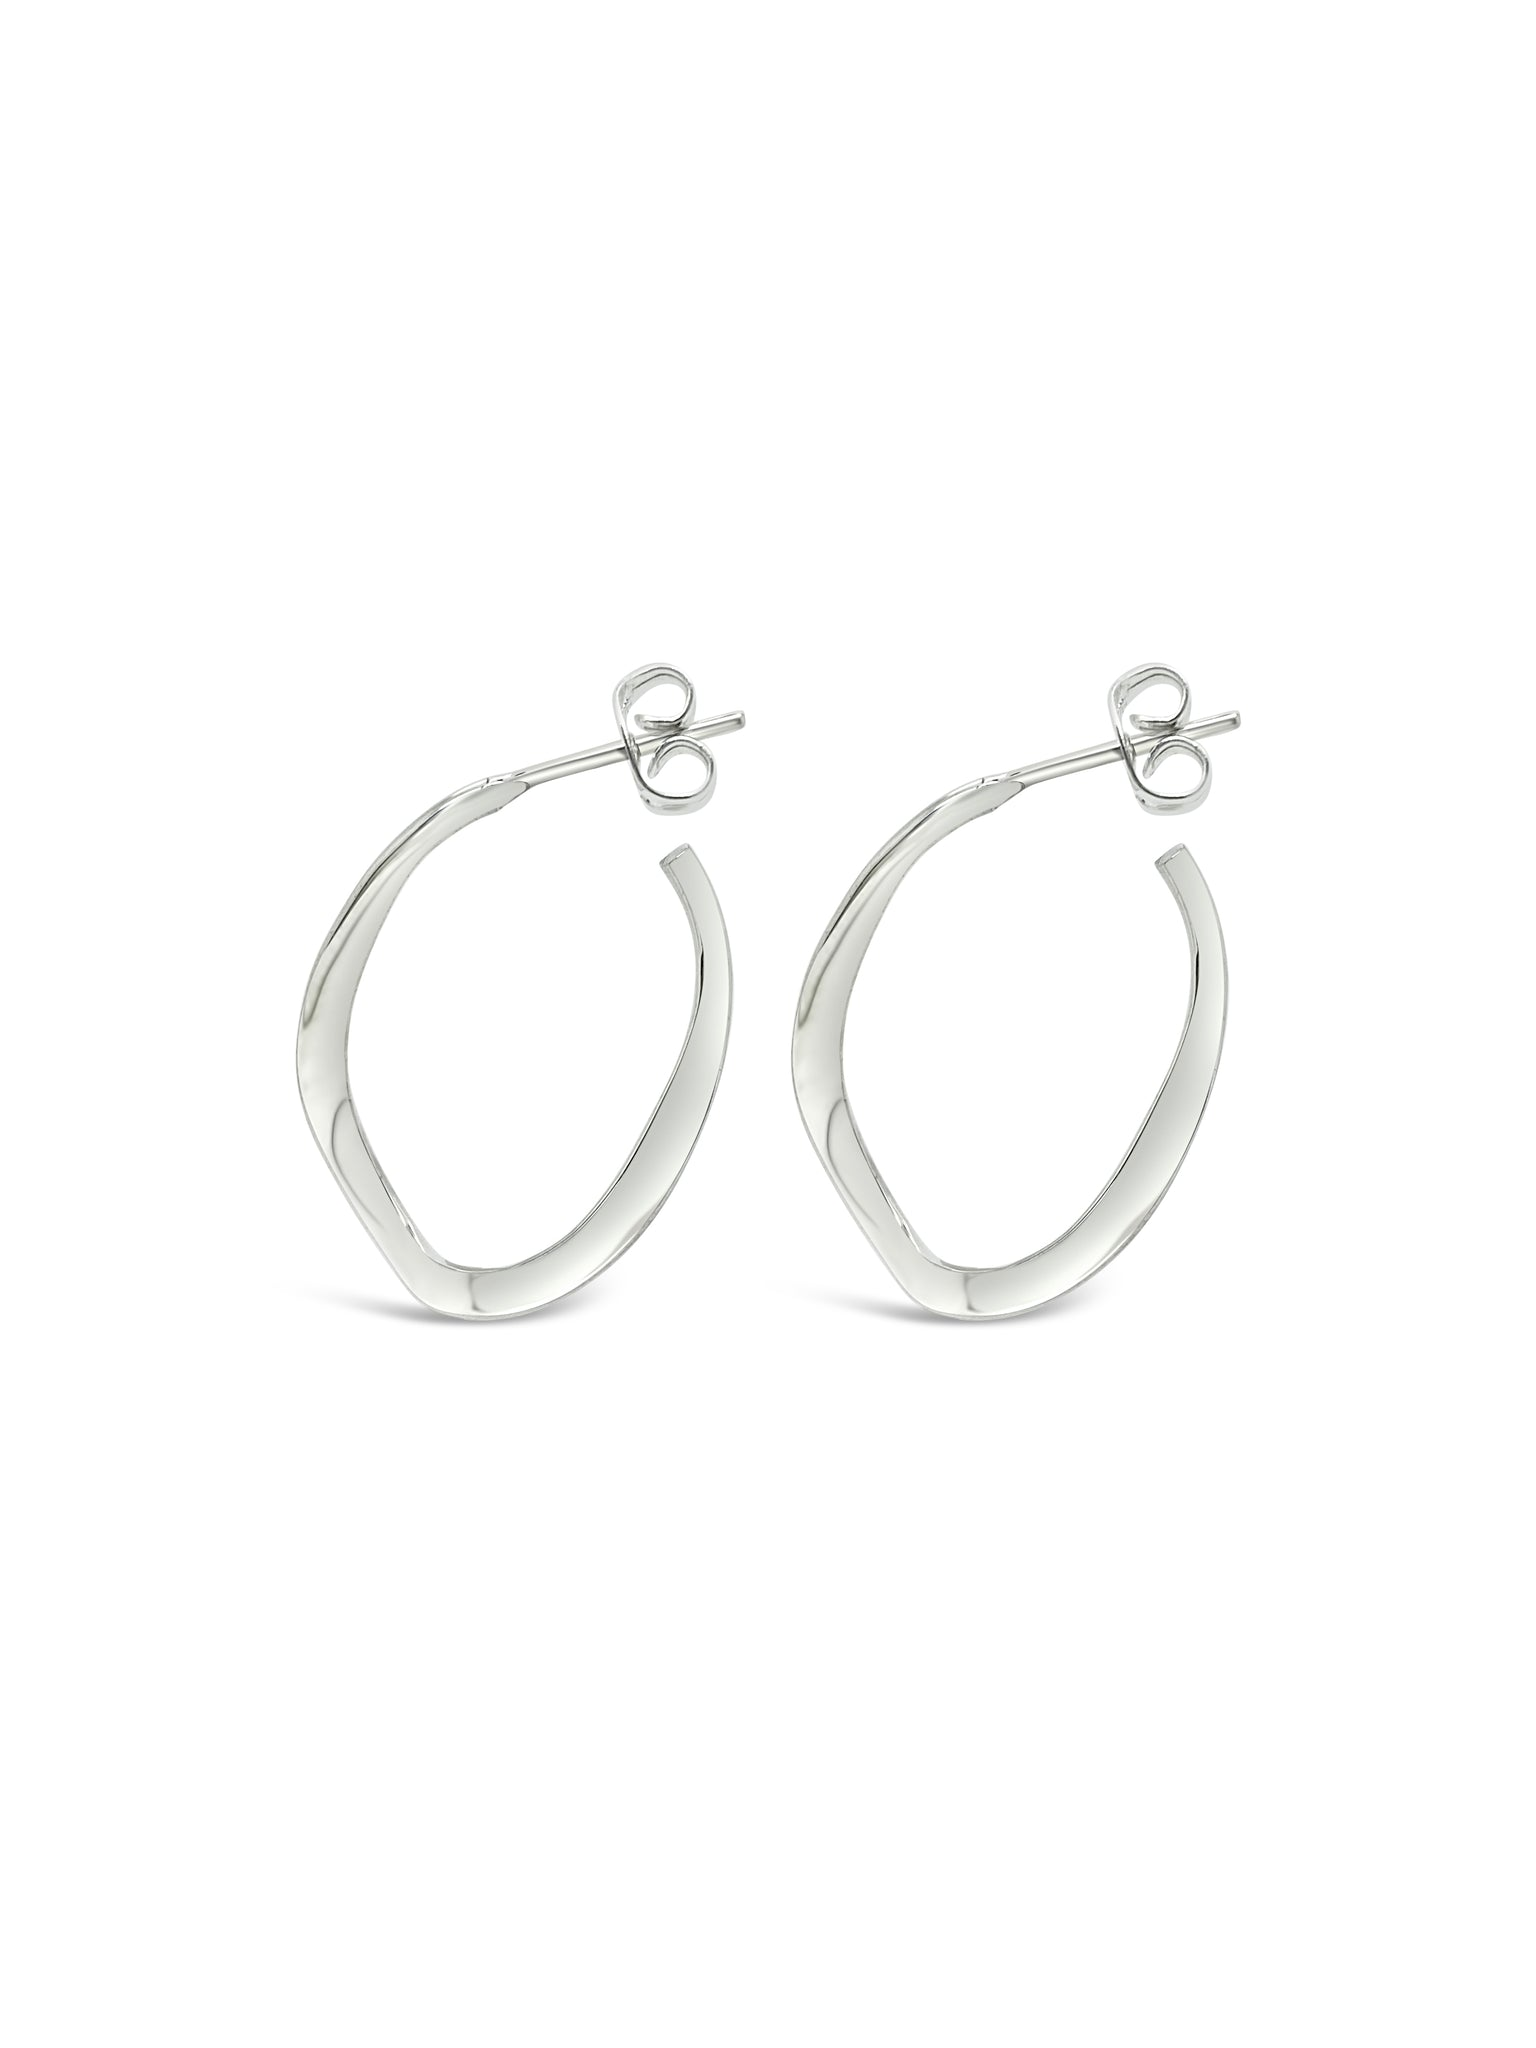 TWIST AND TURN HOOPS